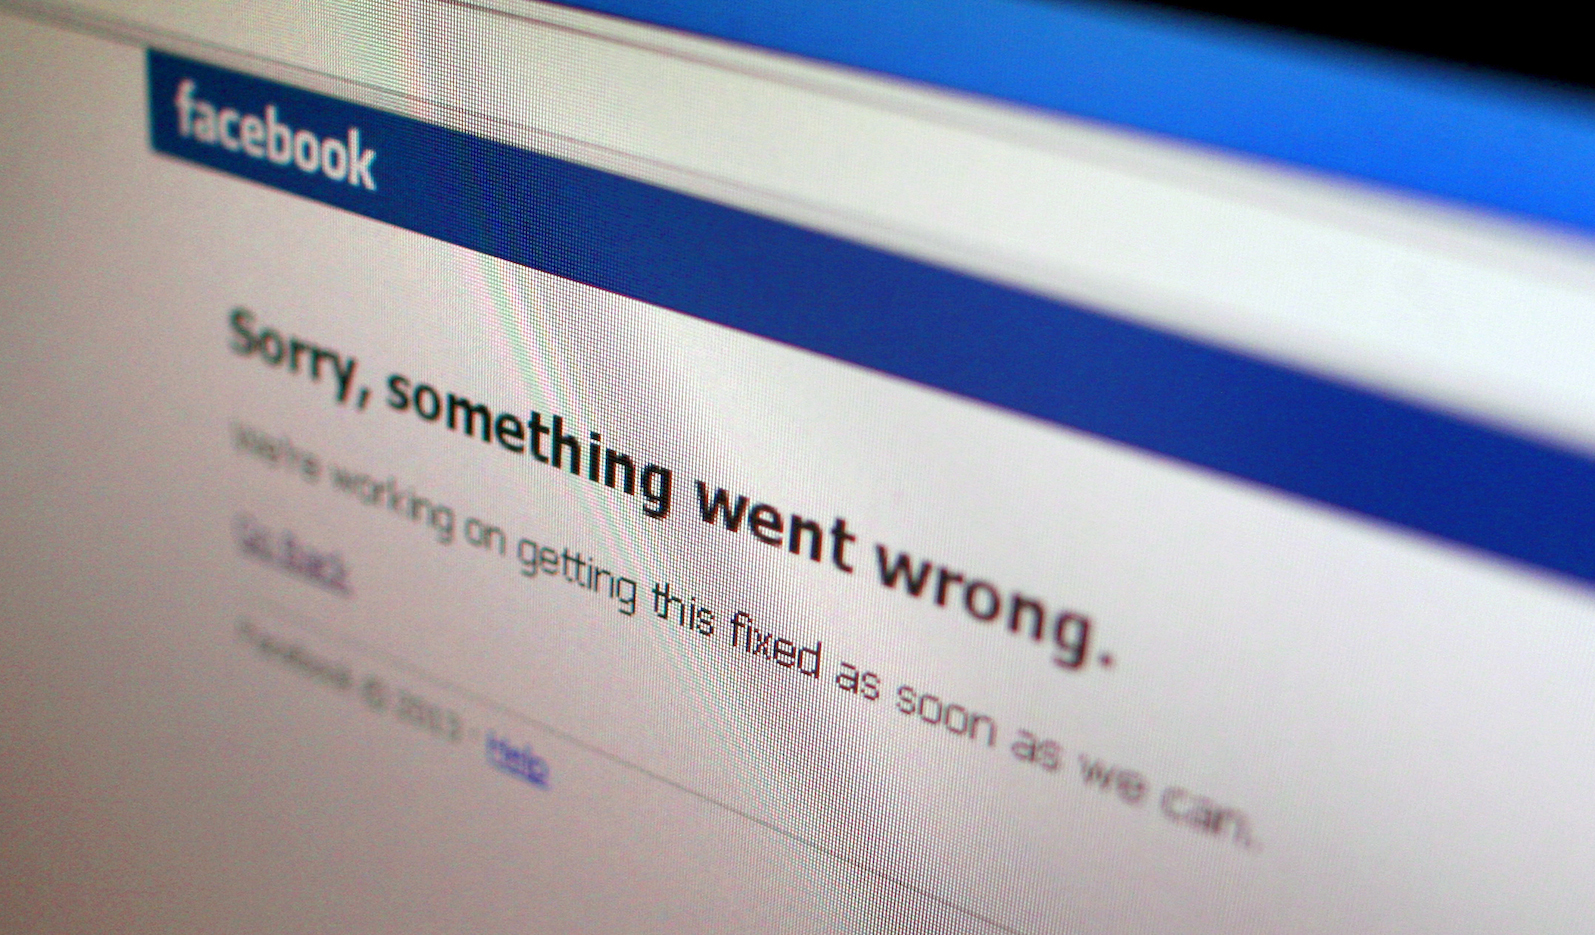 A Facebook error message is seen in this illustration photo of a computer screen in Singapore